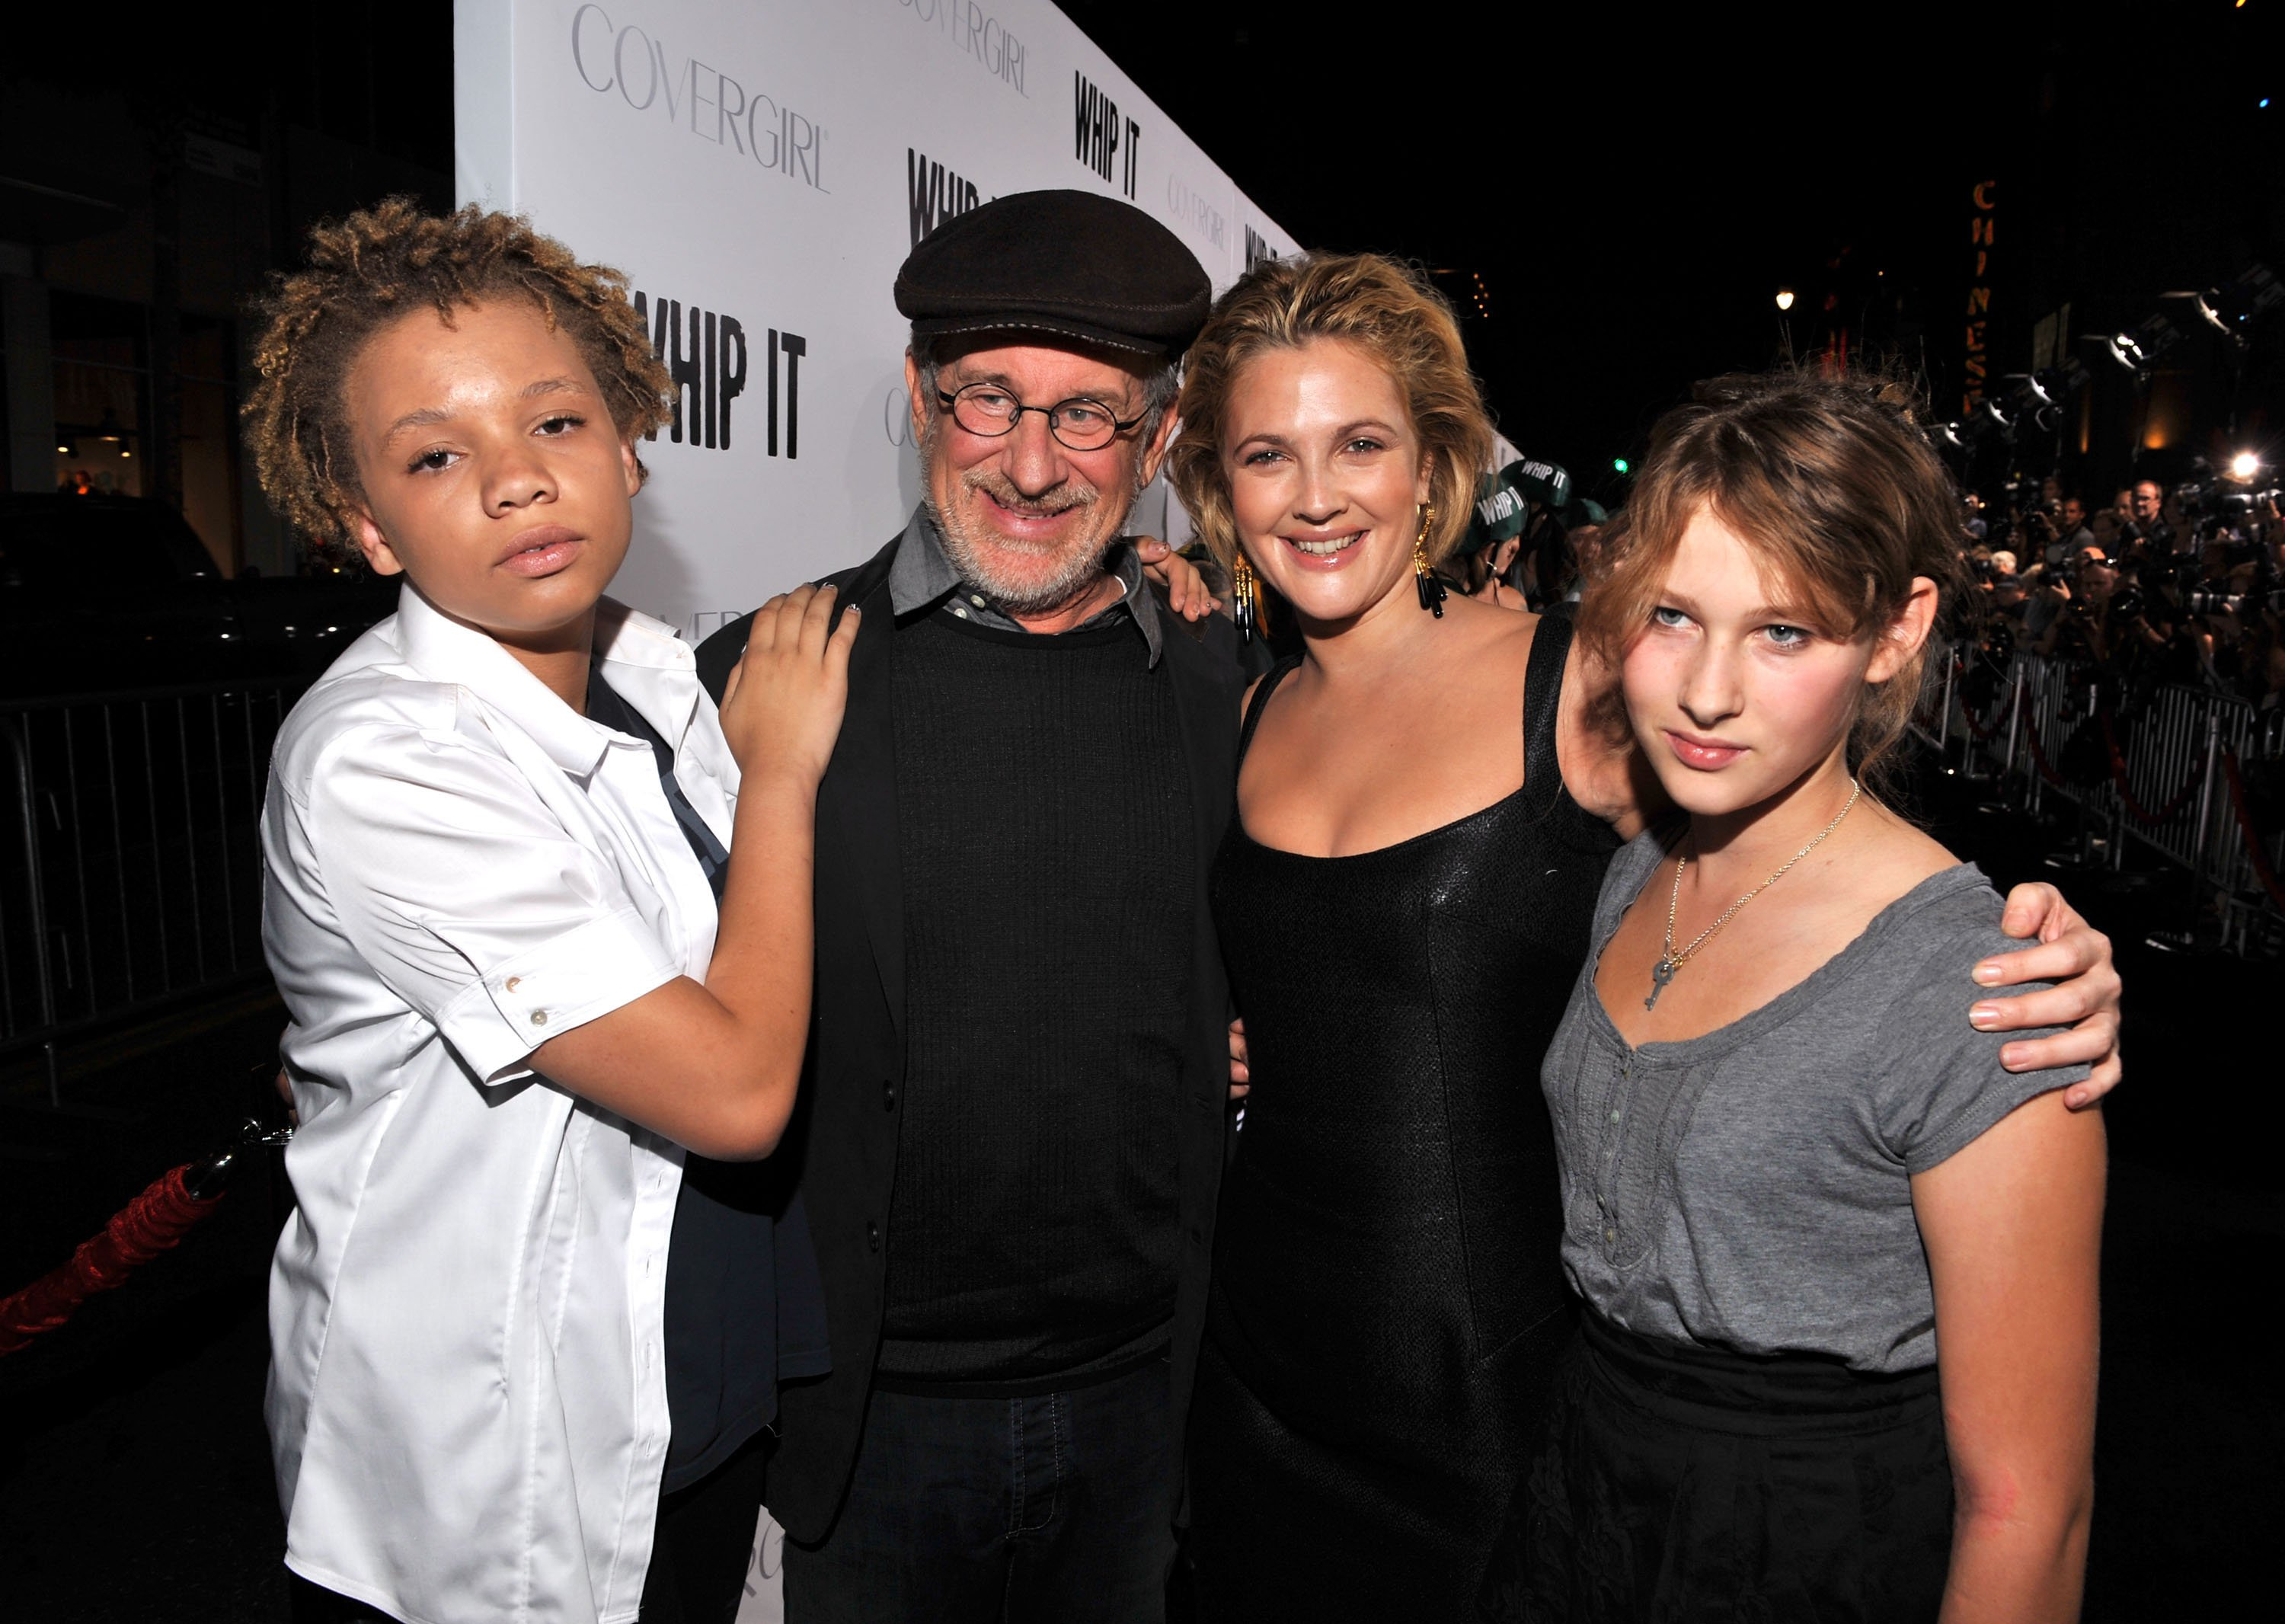 """Mikaela Spielberg, Steven Spielberg, Drew Barrymore and Destry Allyn Spielberg arrive on the red carpet for the premiere of """"Whip It"""" on September 29, 2009, in Hollywood, California 